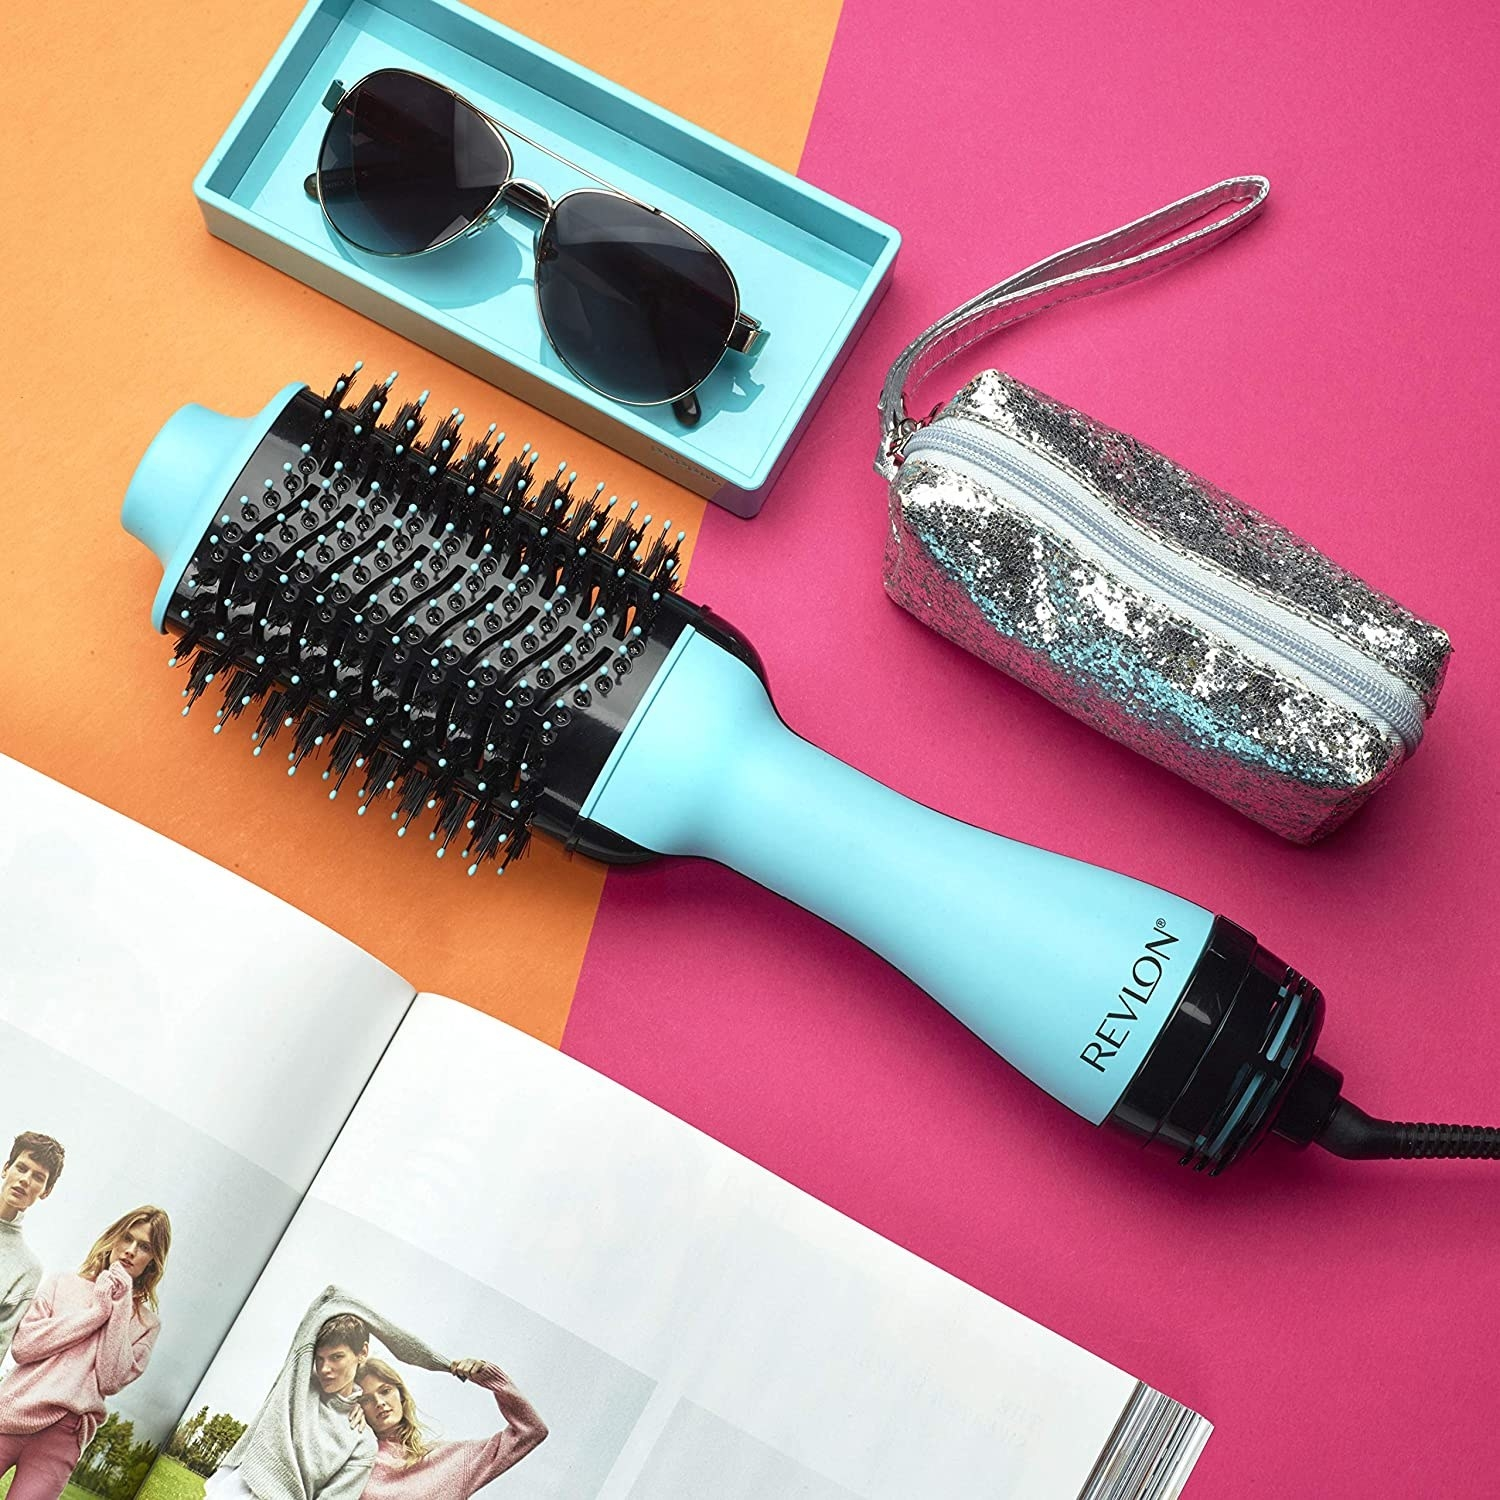 The brush beside a magazine and makeup bag